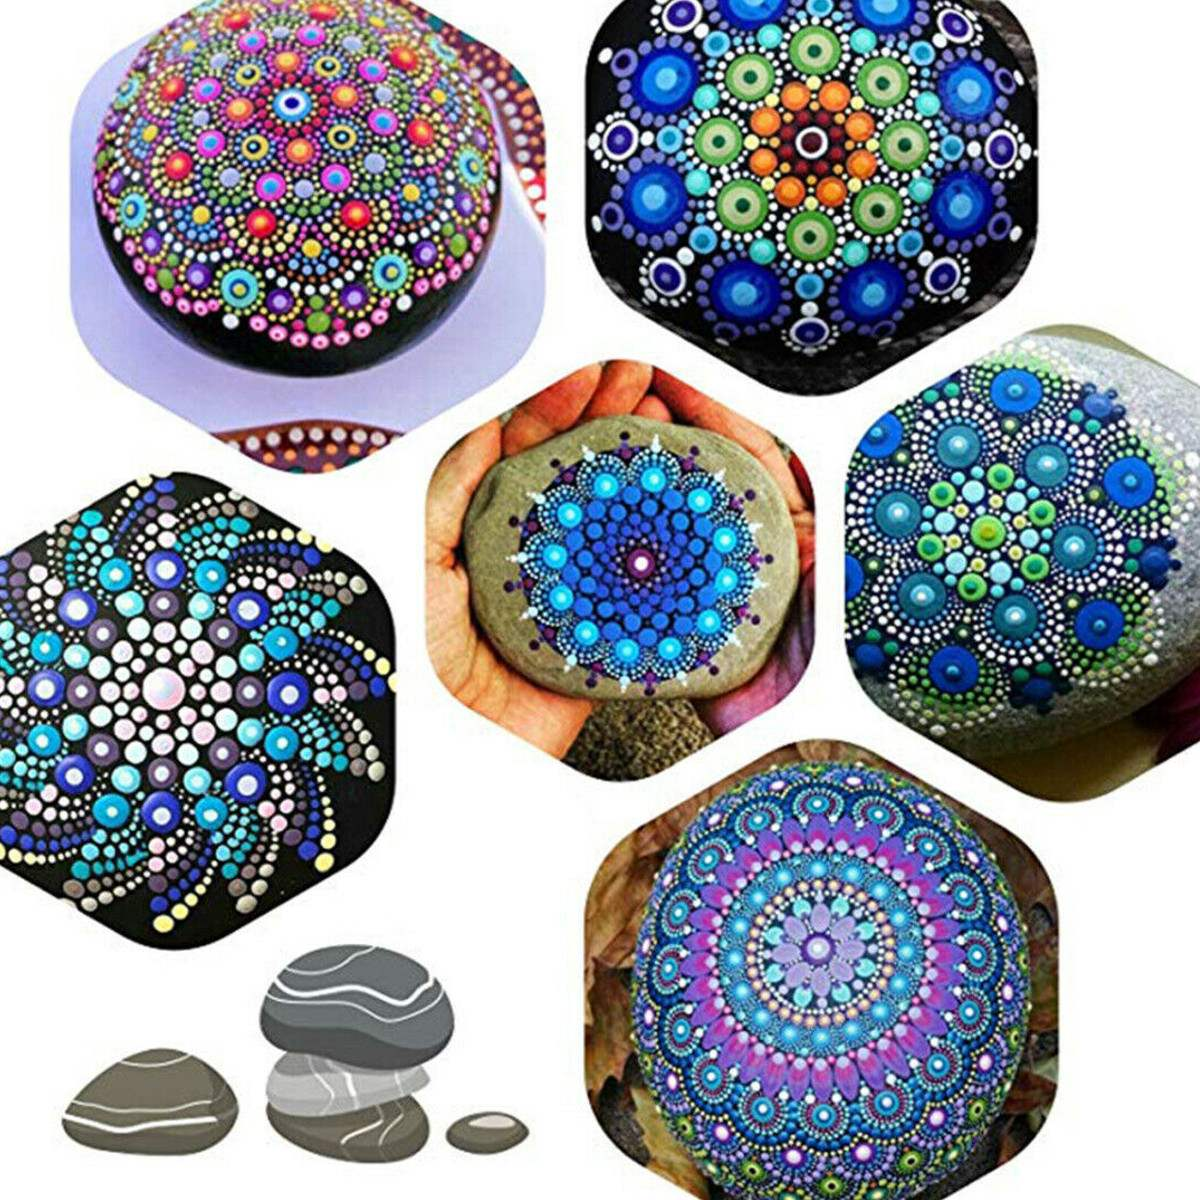 12Pcs/set Craft Mandala Auxiliary Template Stone Painting Stencils DIY Scrapbooking Album Paper Card Decorative Craft Embossing